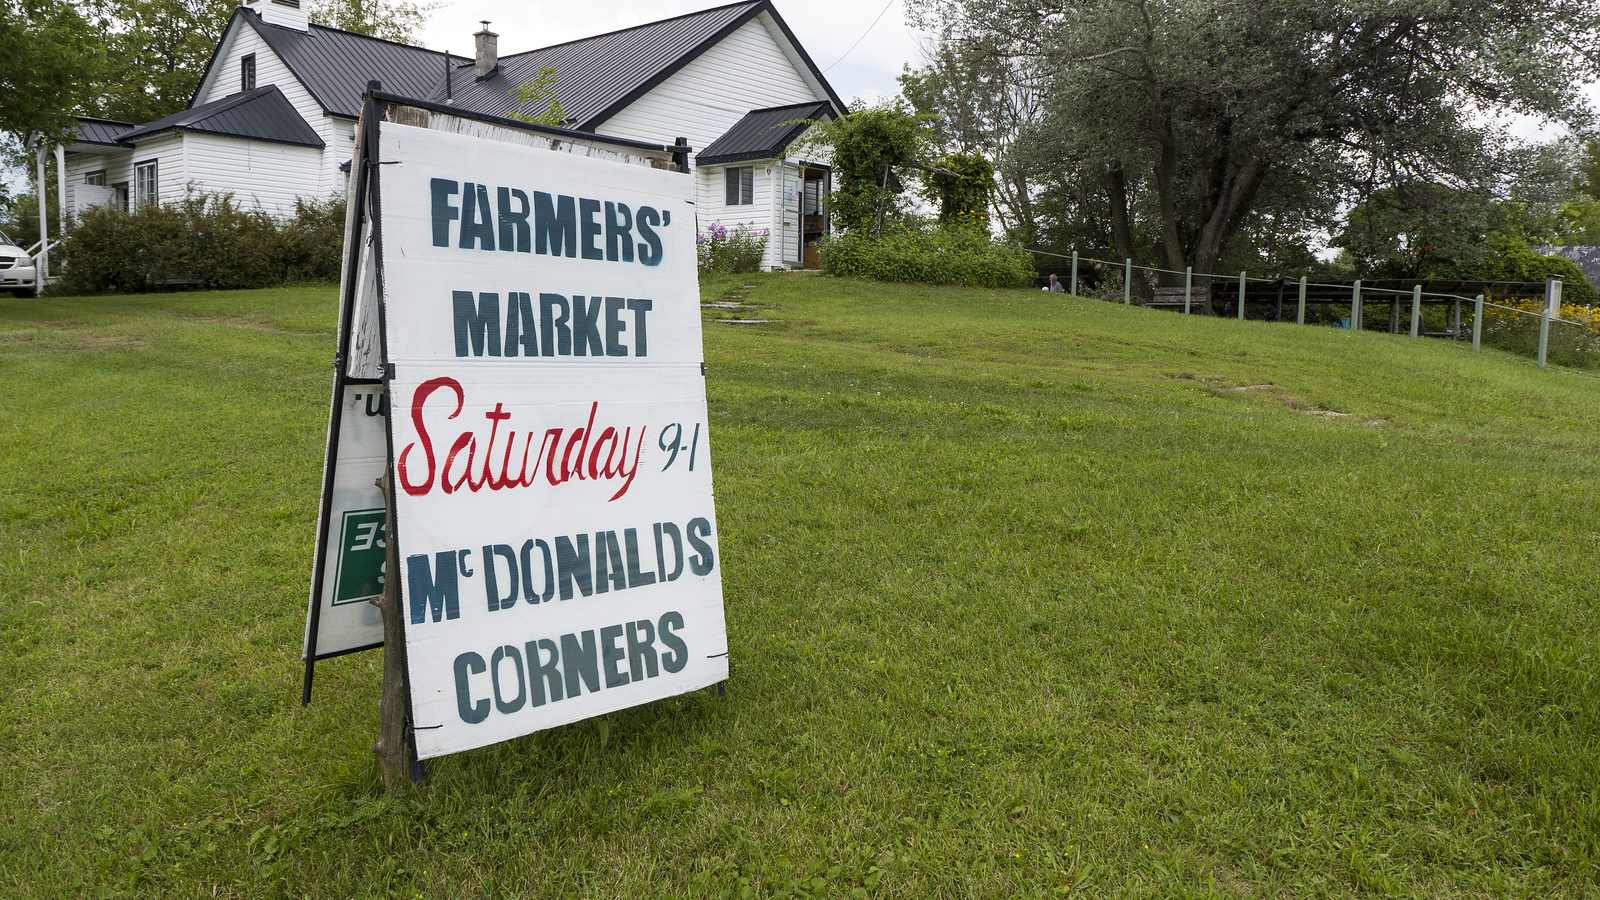 McDonald's Corners Farmers' Market in Lanark County